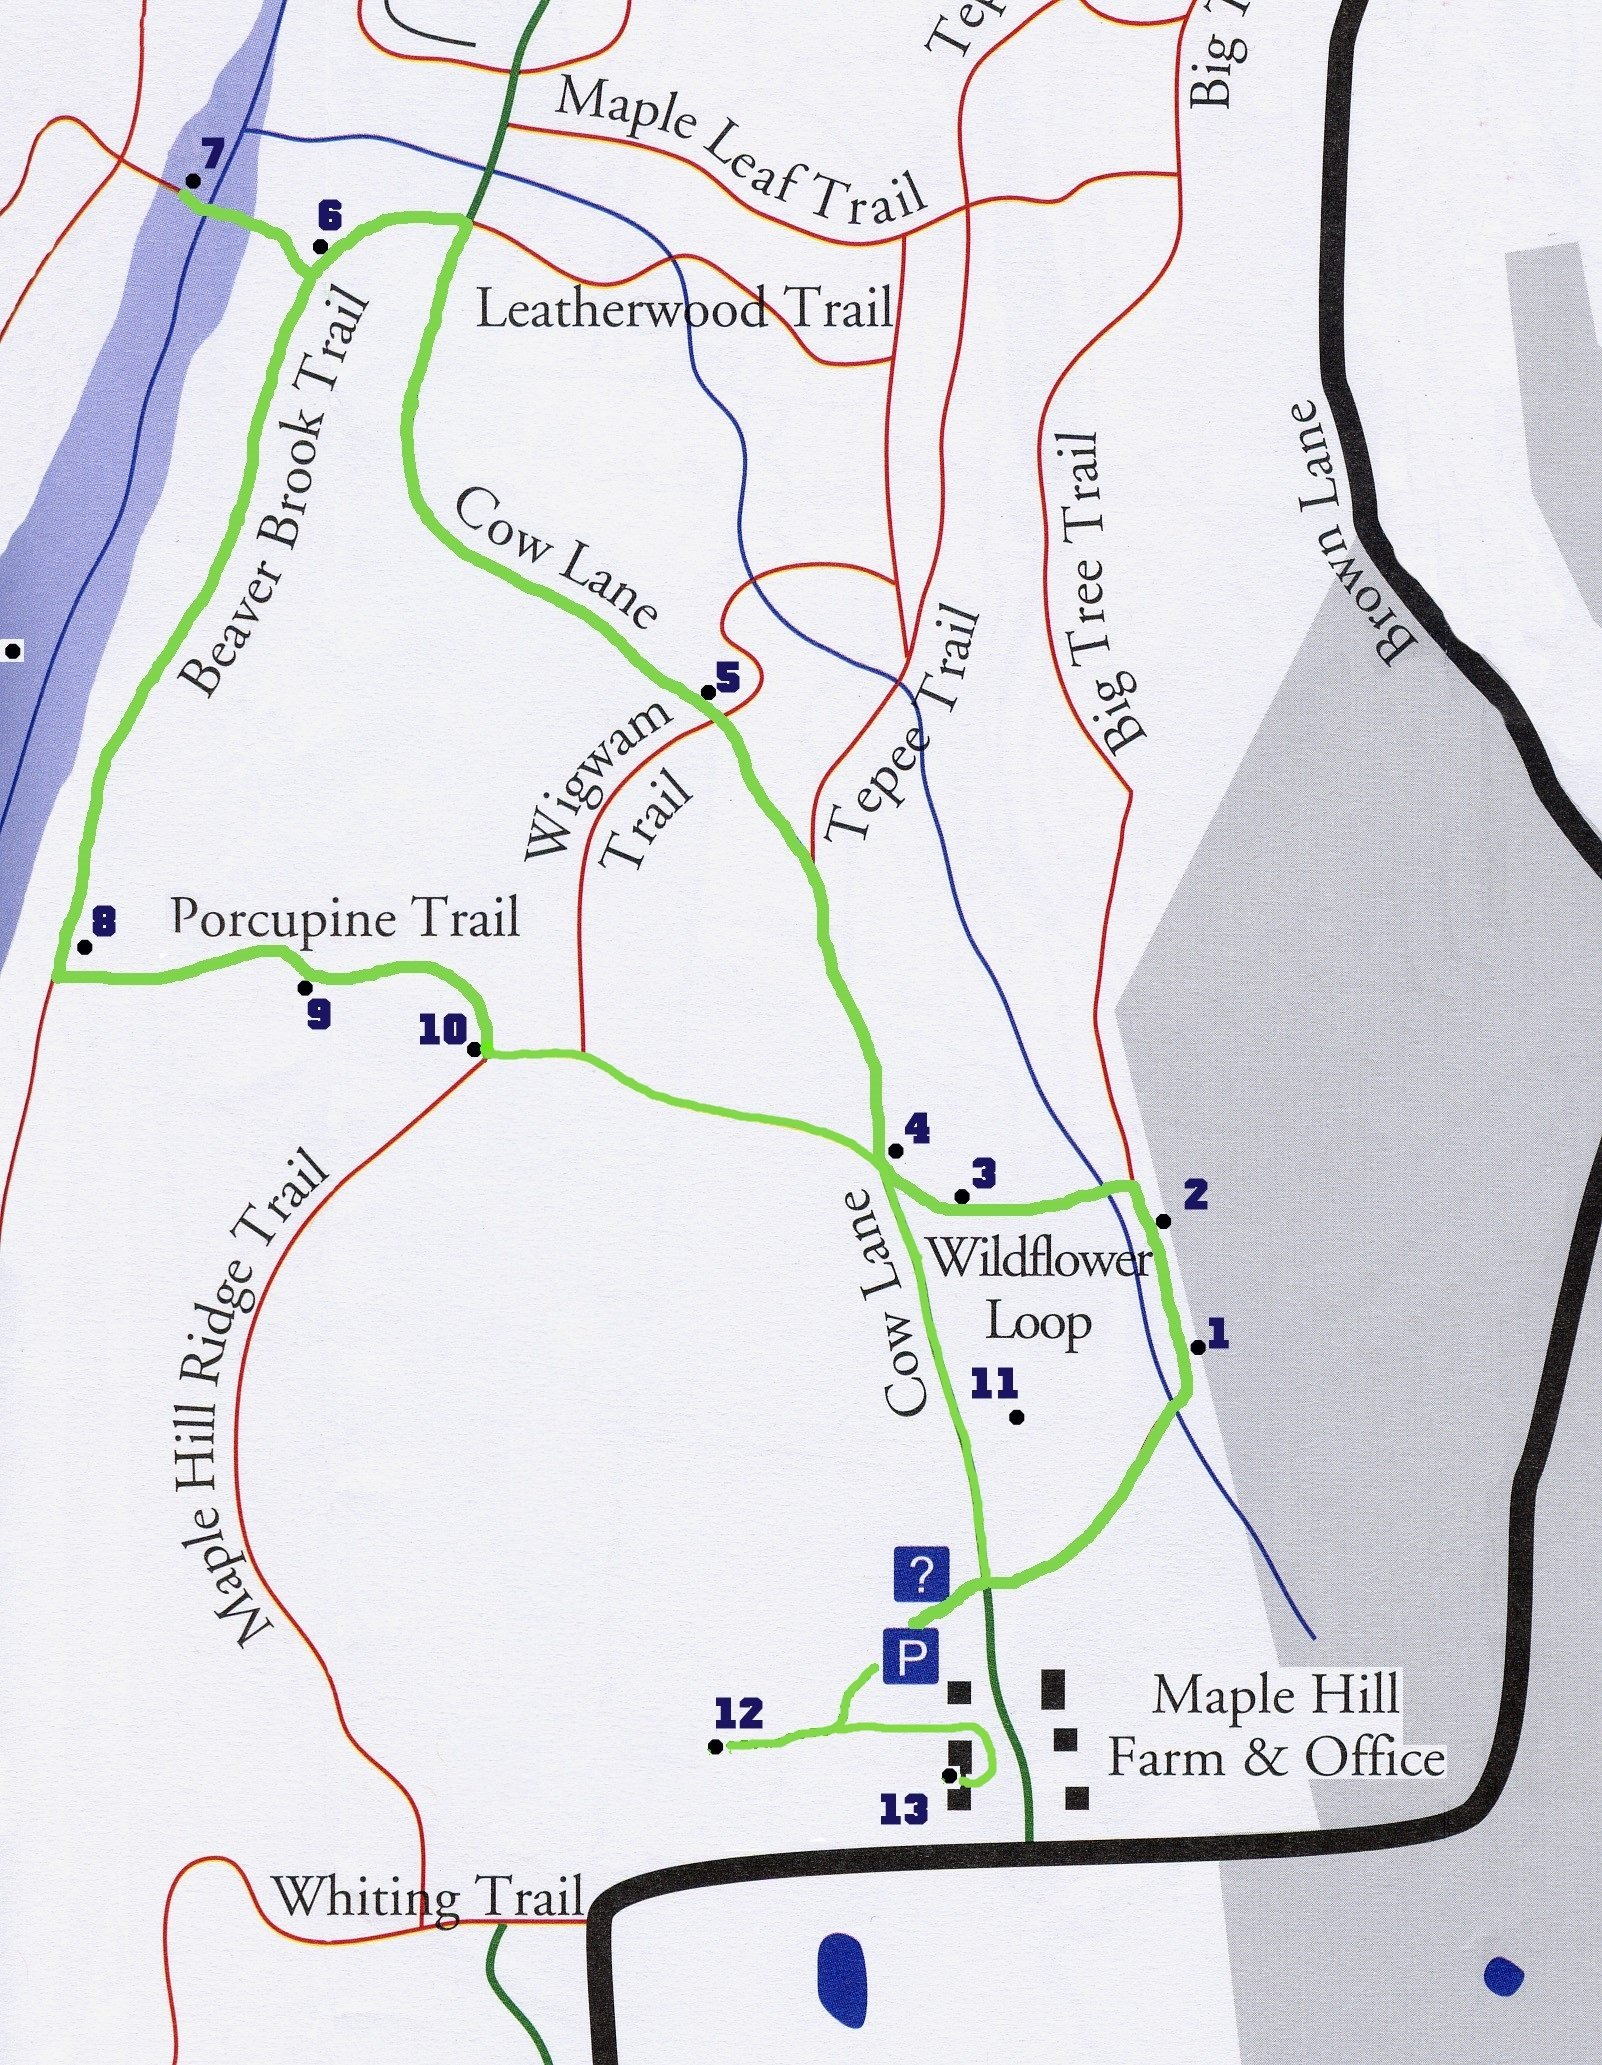 Trail Maps and Guides - Beaver Brook ociation on